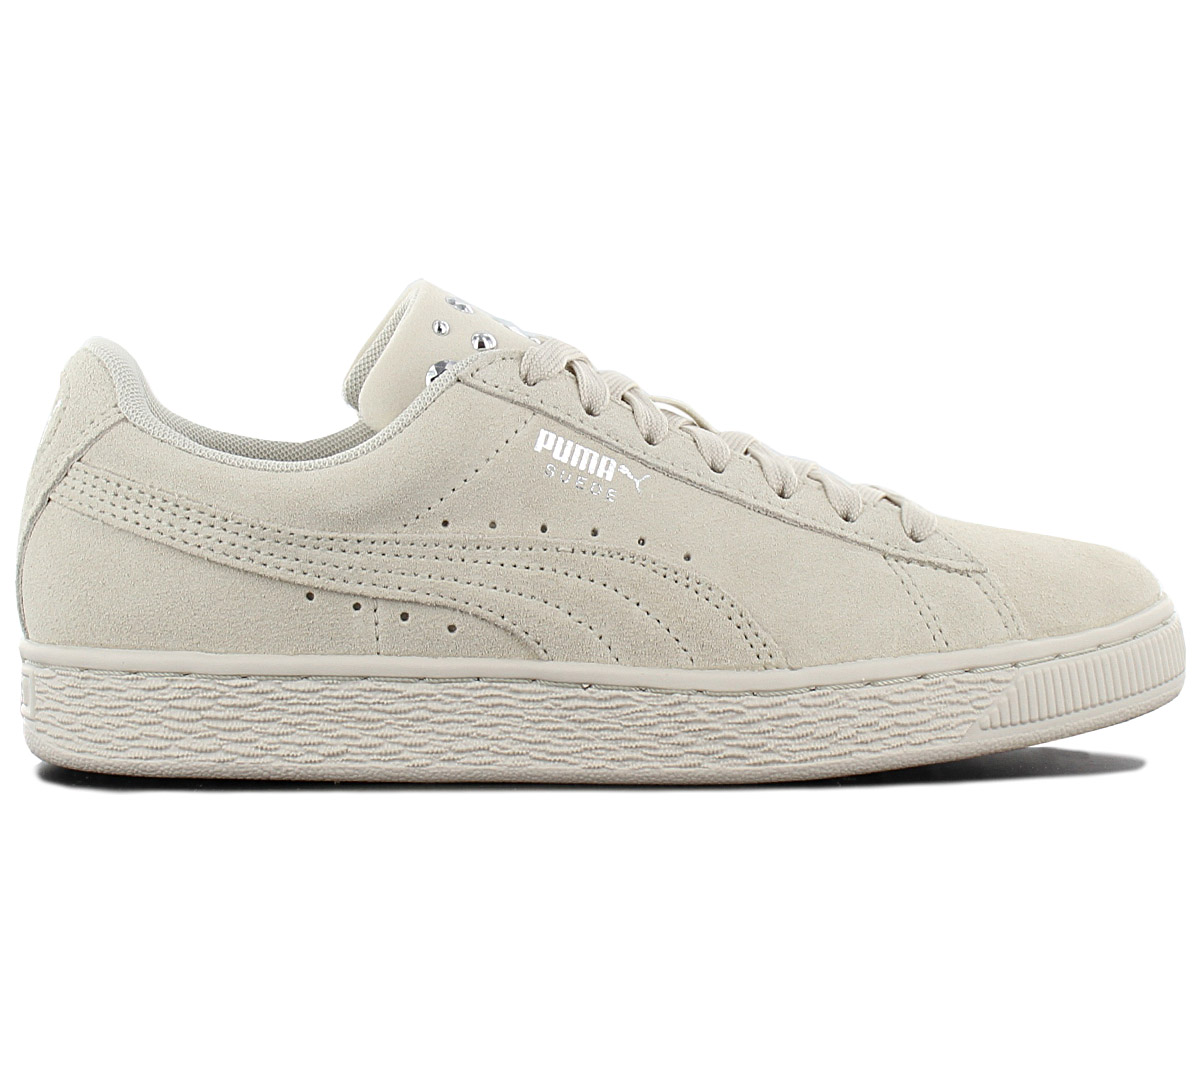 Details about Puma Suede Jewel Women's Sneaker Shoes 367273 02 Leather Beige Trainers New